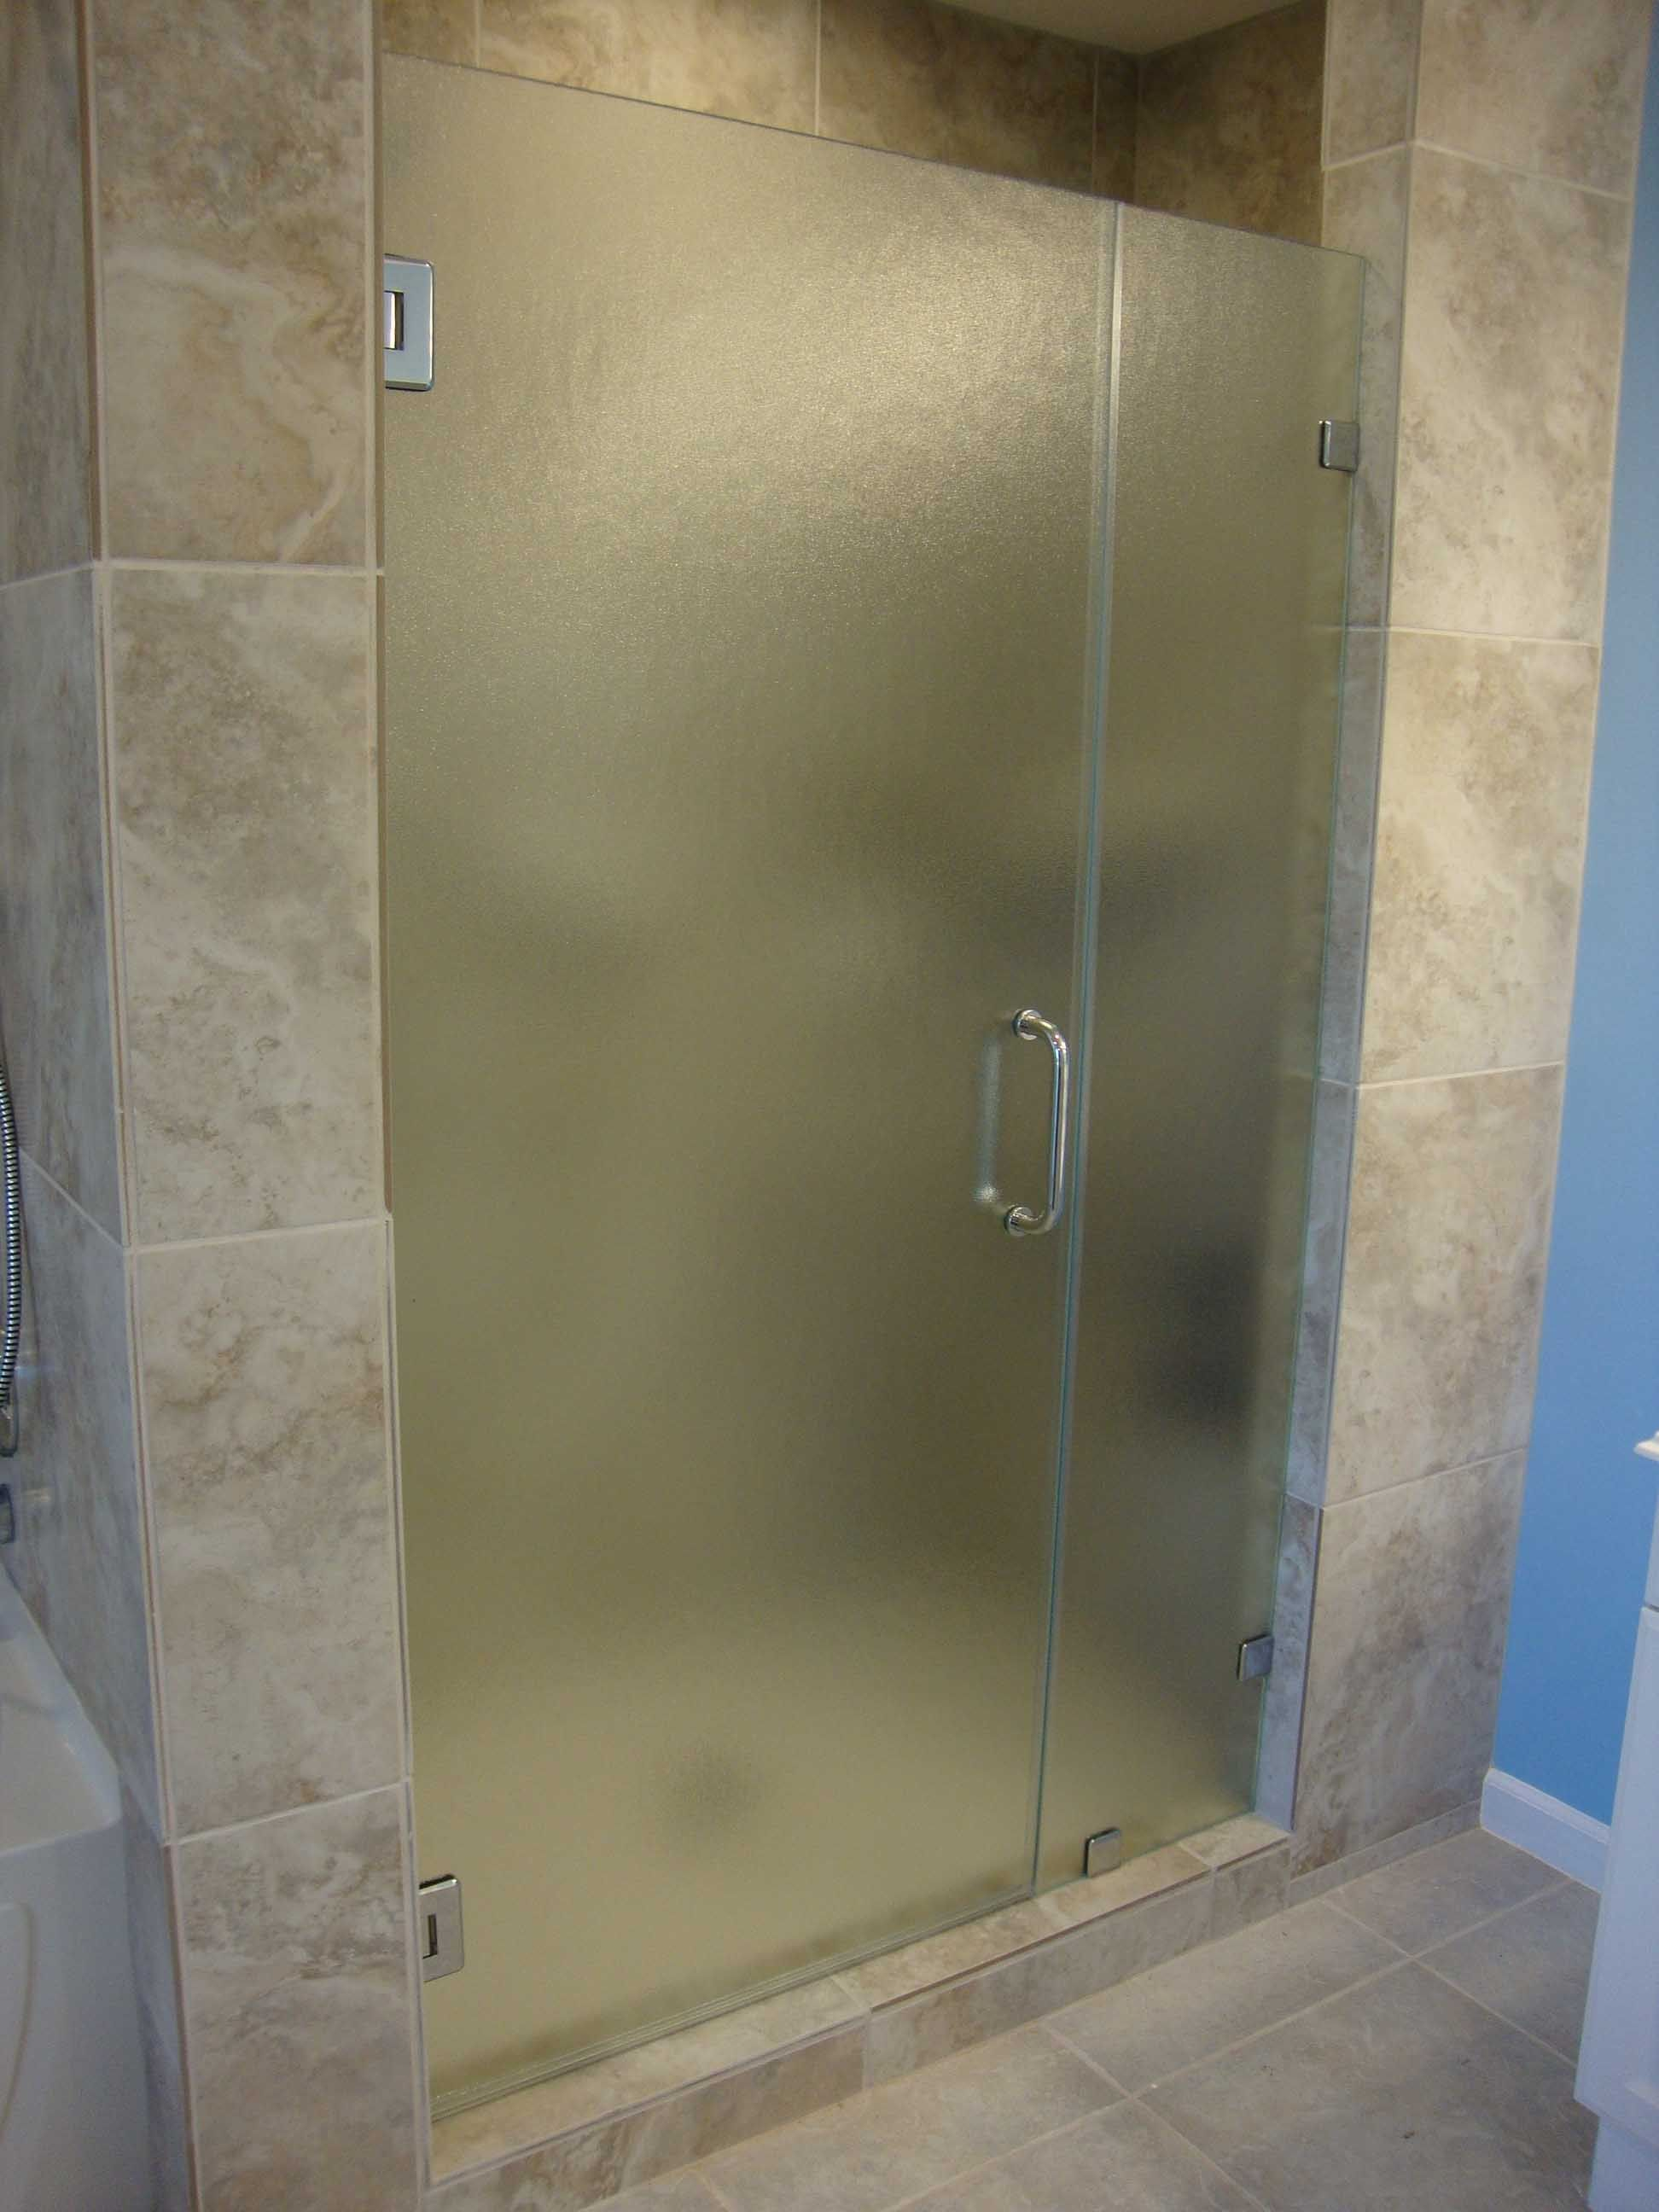 Small Bathroom Shower Ideas For Small Modern Bathroom Design With Brown Wall Ceramic Tiles Ideas Frameless Shower Doors Bathroom Shower Doors Shower Doors